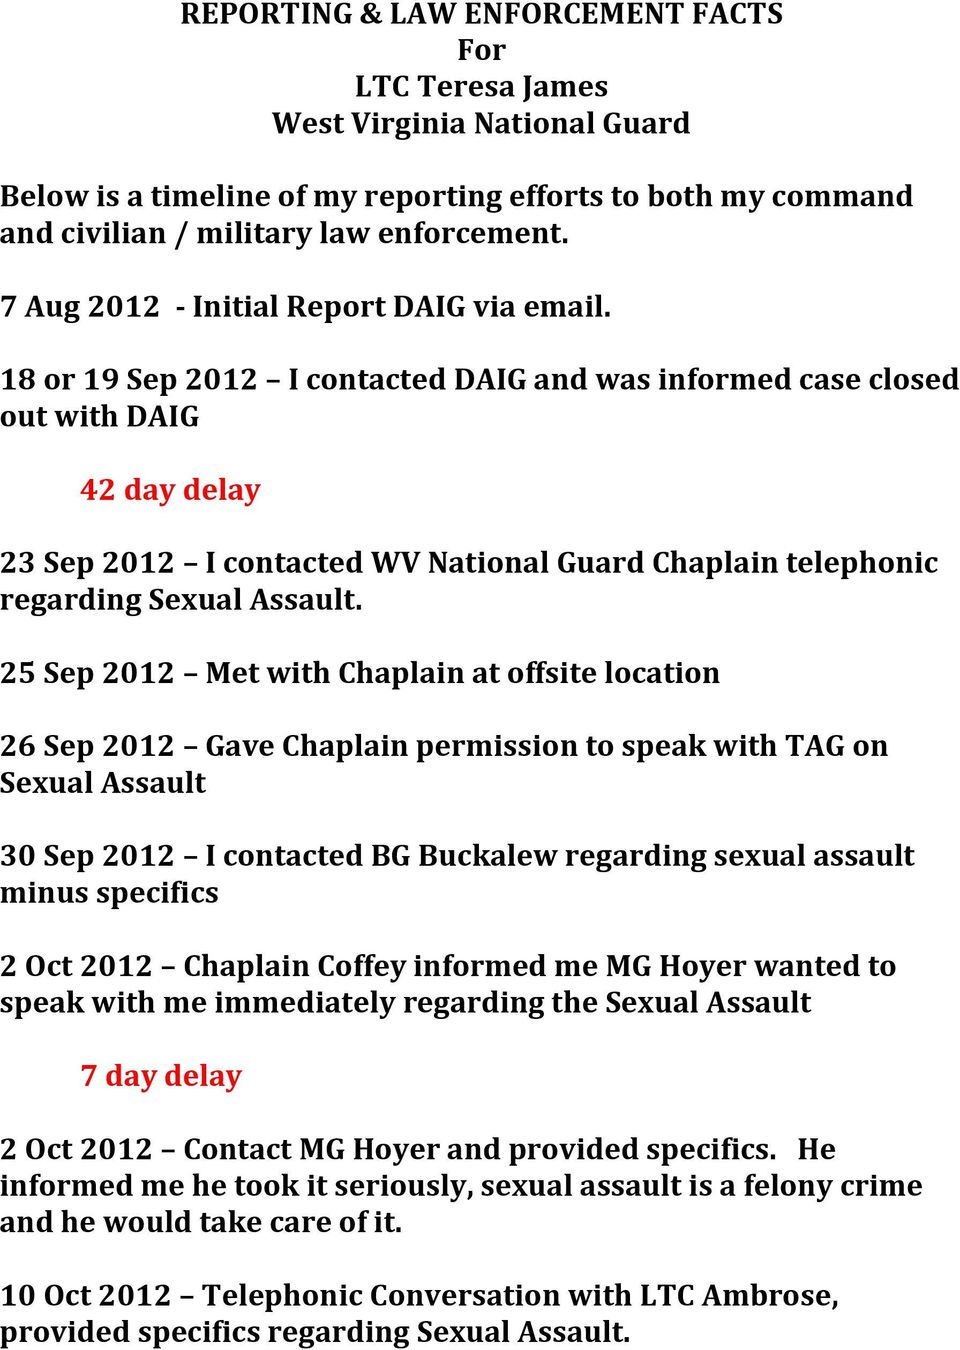 18 or 19 Sep 2012 I contacted DAIG and was informed case closed out with DAIG 42 day delay 23 Sep 2012 I contacted WV National Guard Chaplain telephonic regarding Sexual Assault.